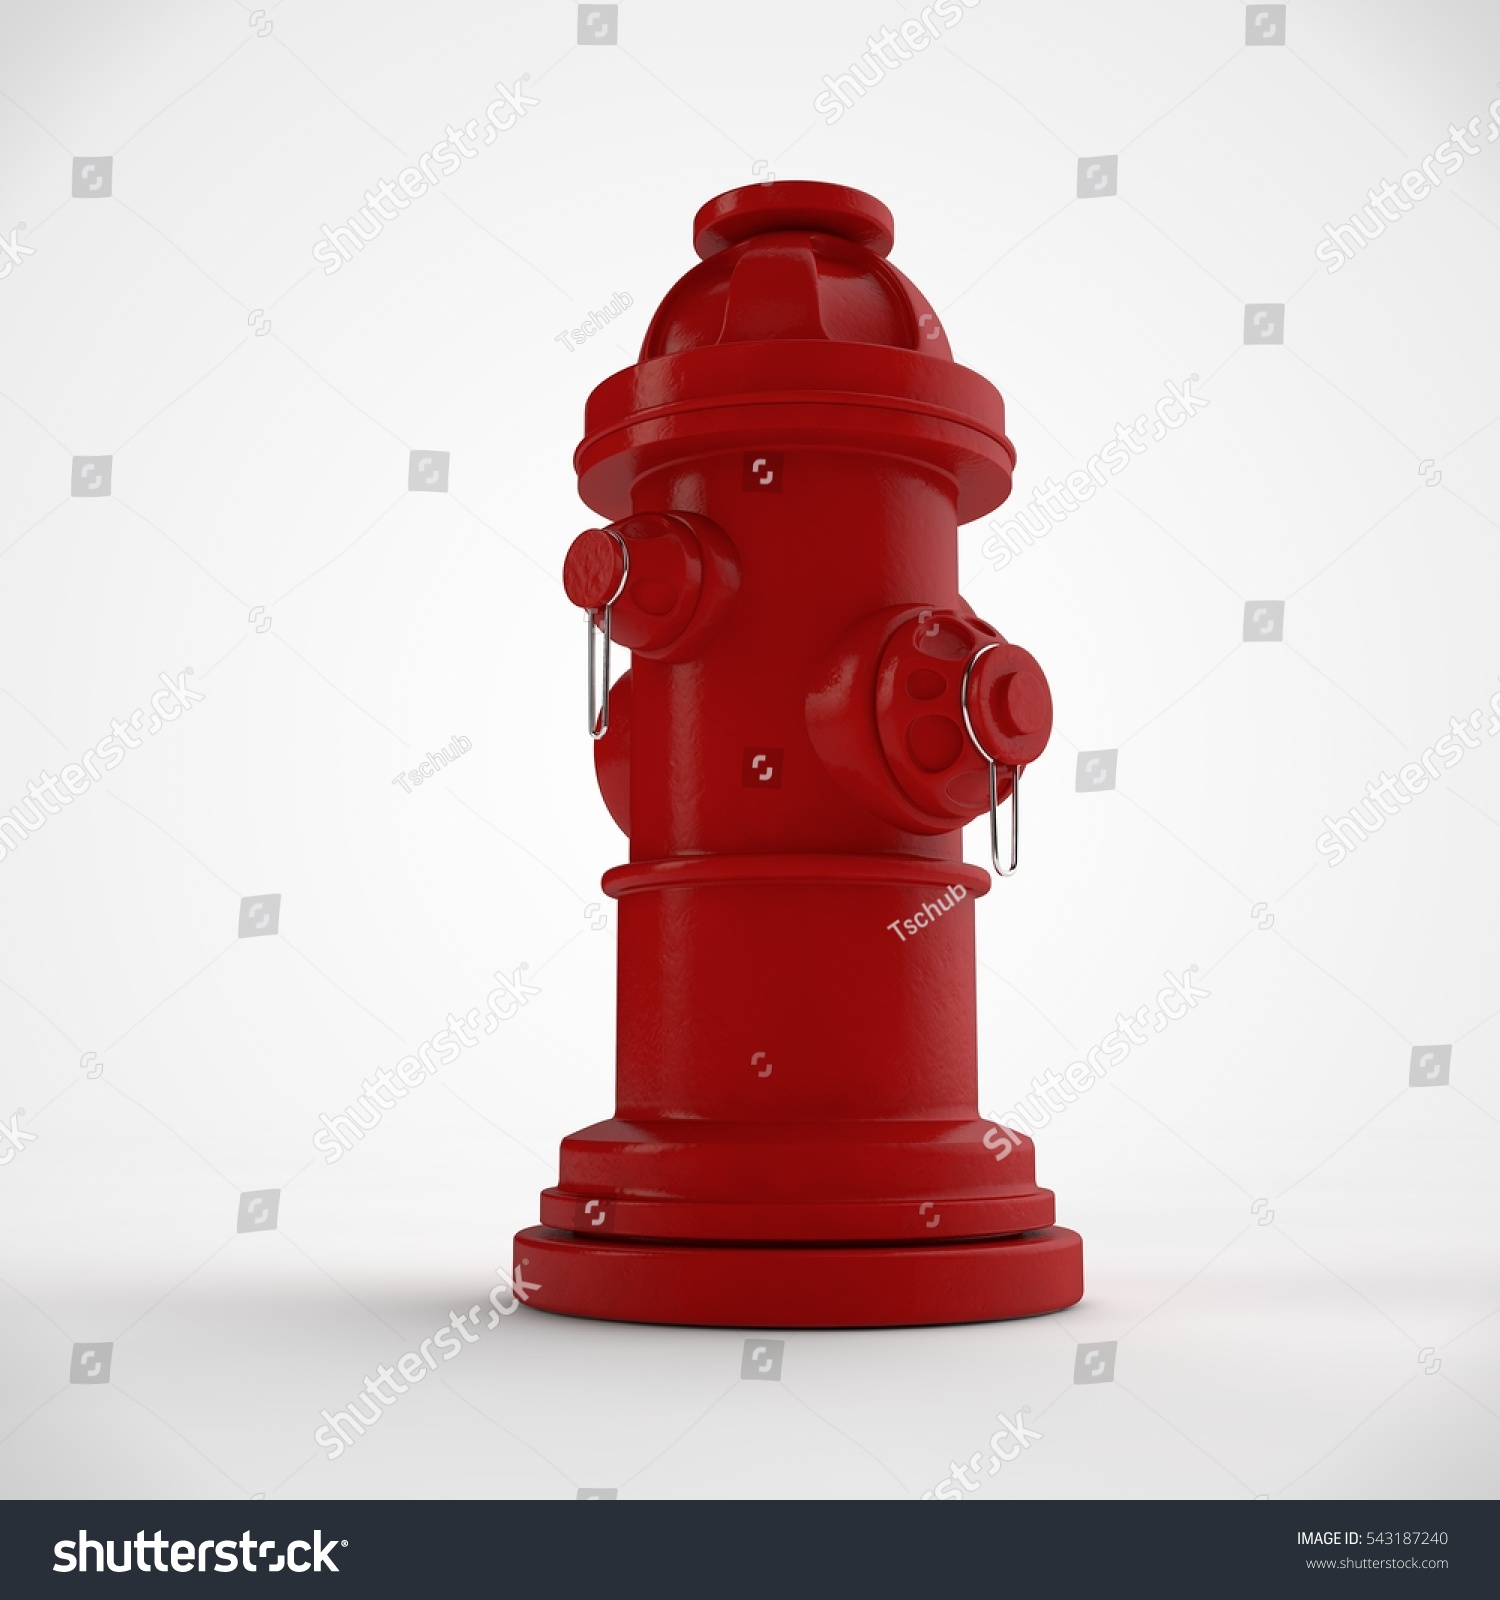 Image Red Fire Hydrant On White Stock Illustration 543187240